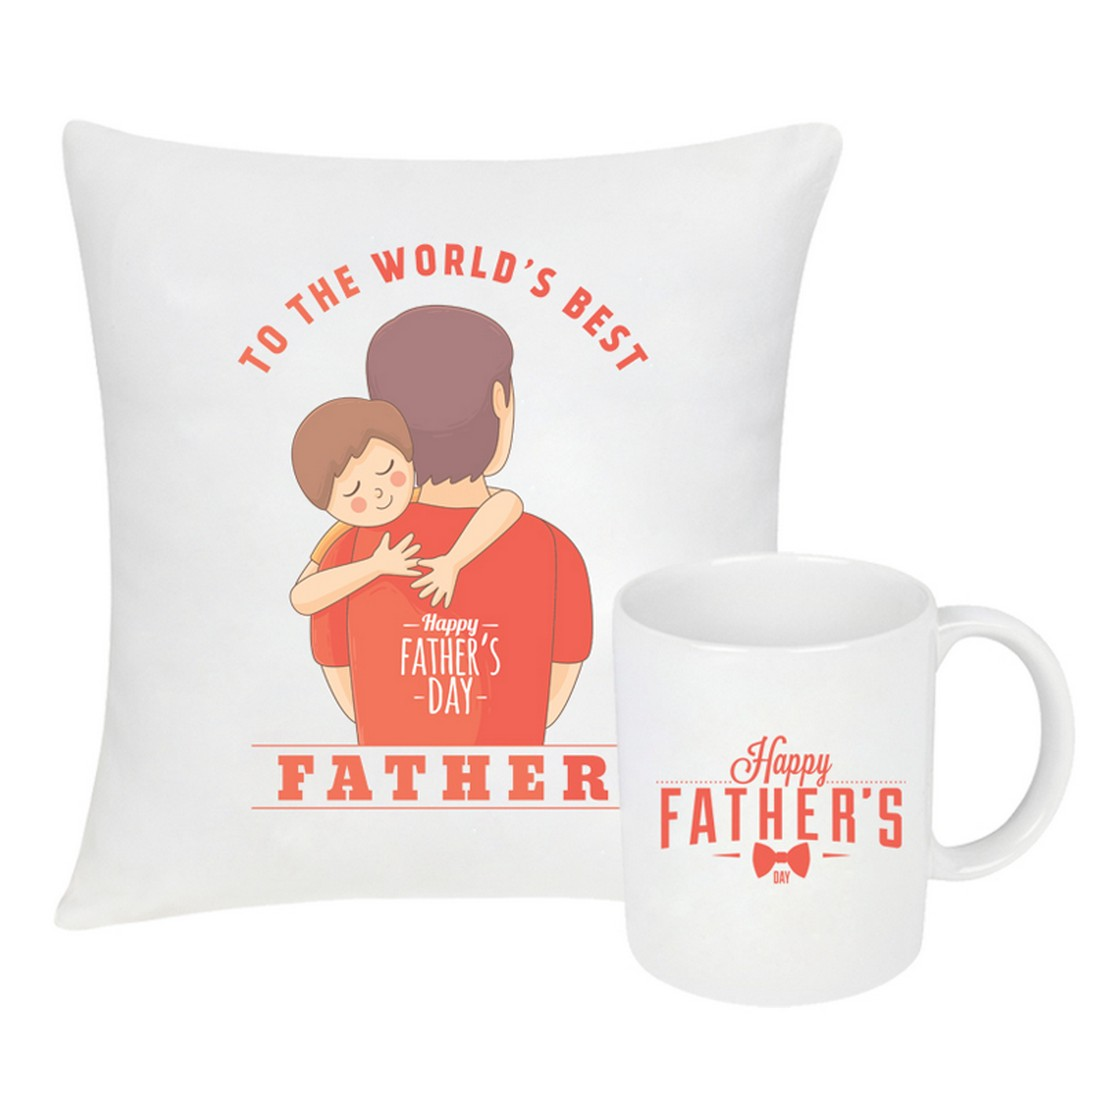 Sattva Combo Premium Printed Cushion Cover With Filler 12 X12 Inches & Ceramic Mug 350 ML EVSCOCM08 For Father's Day